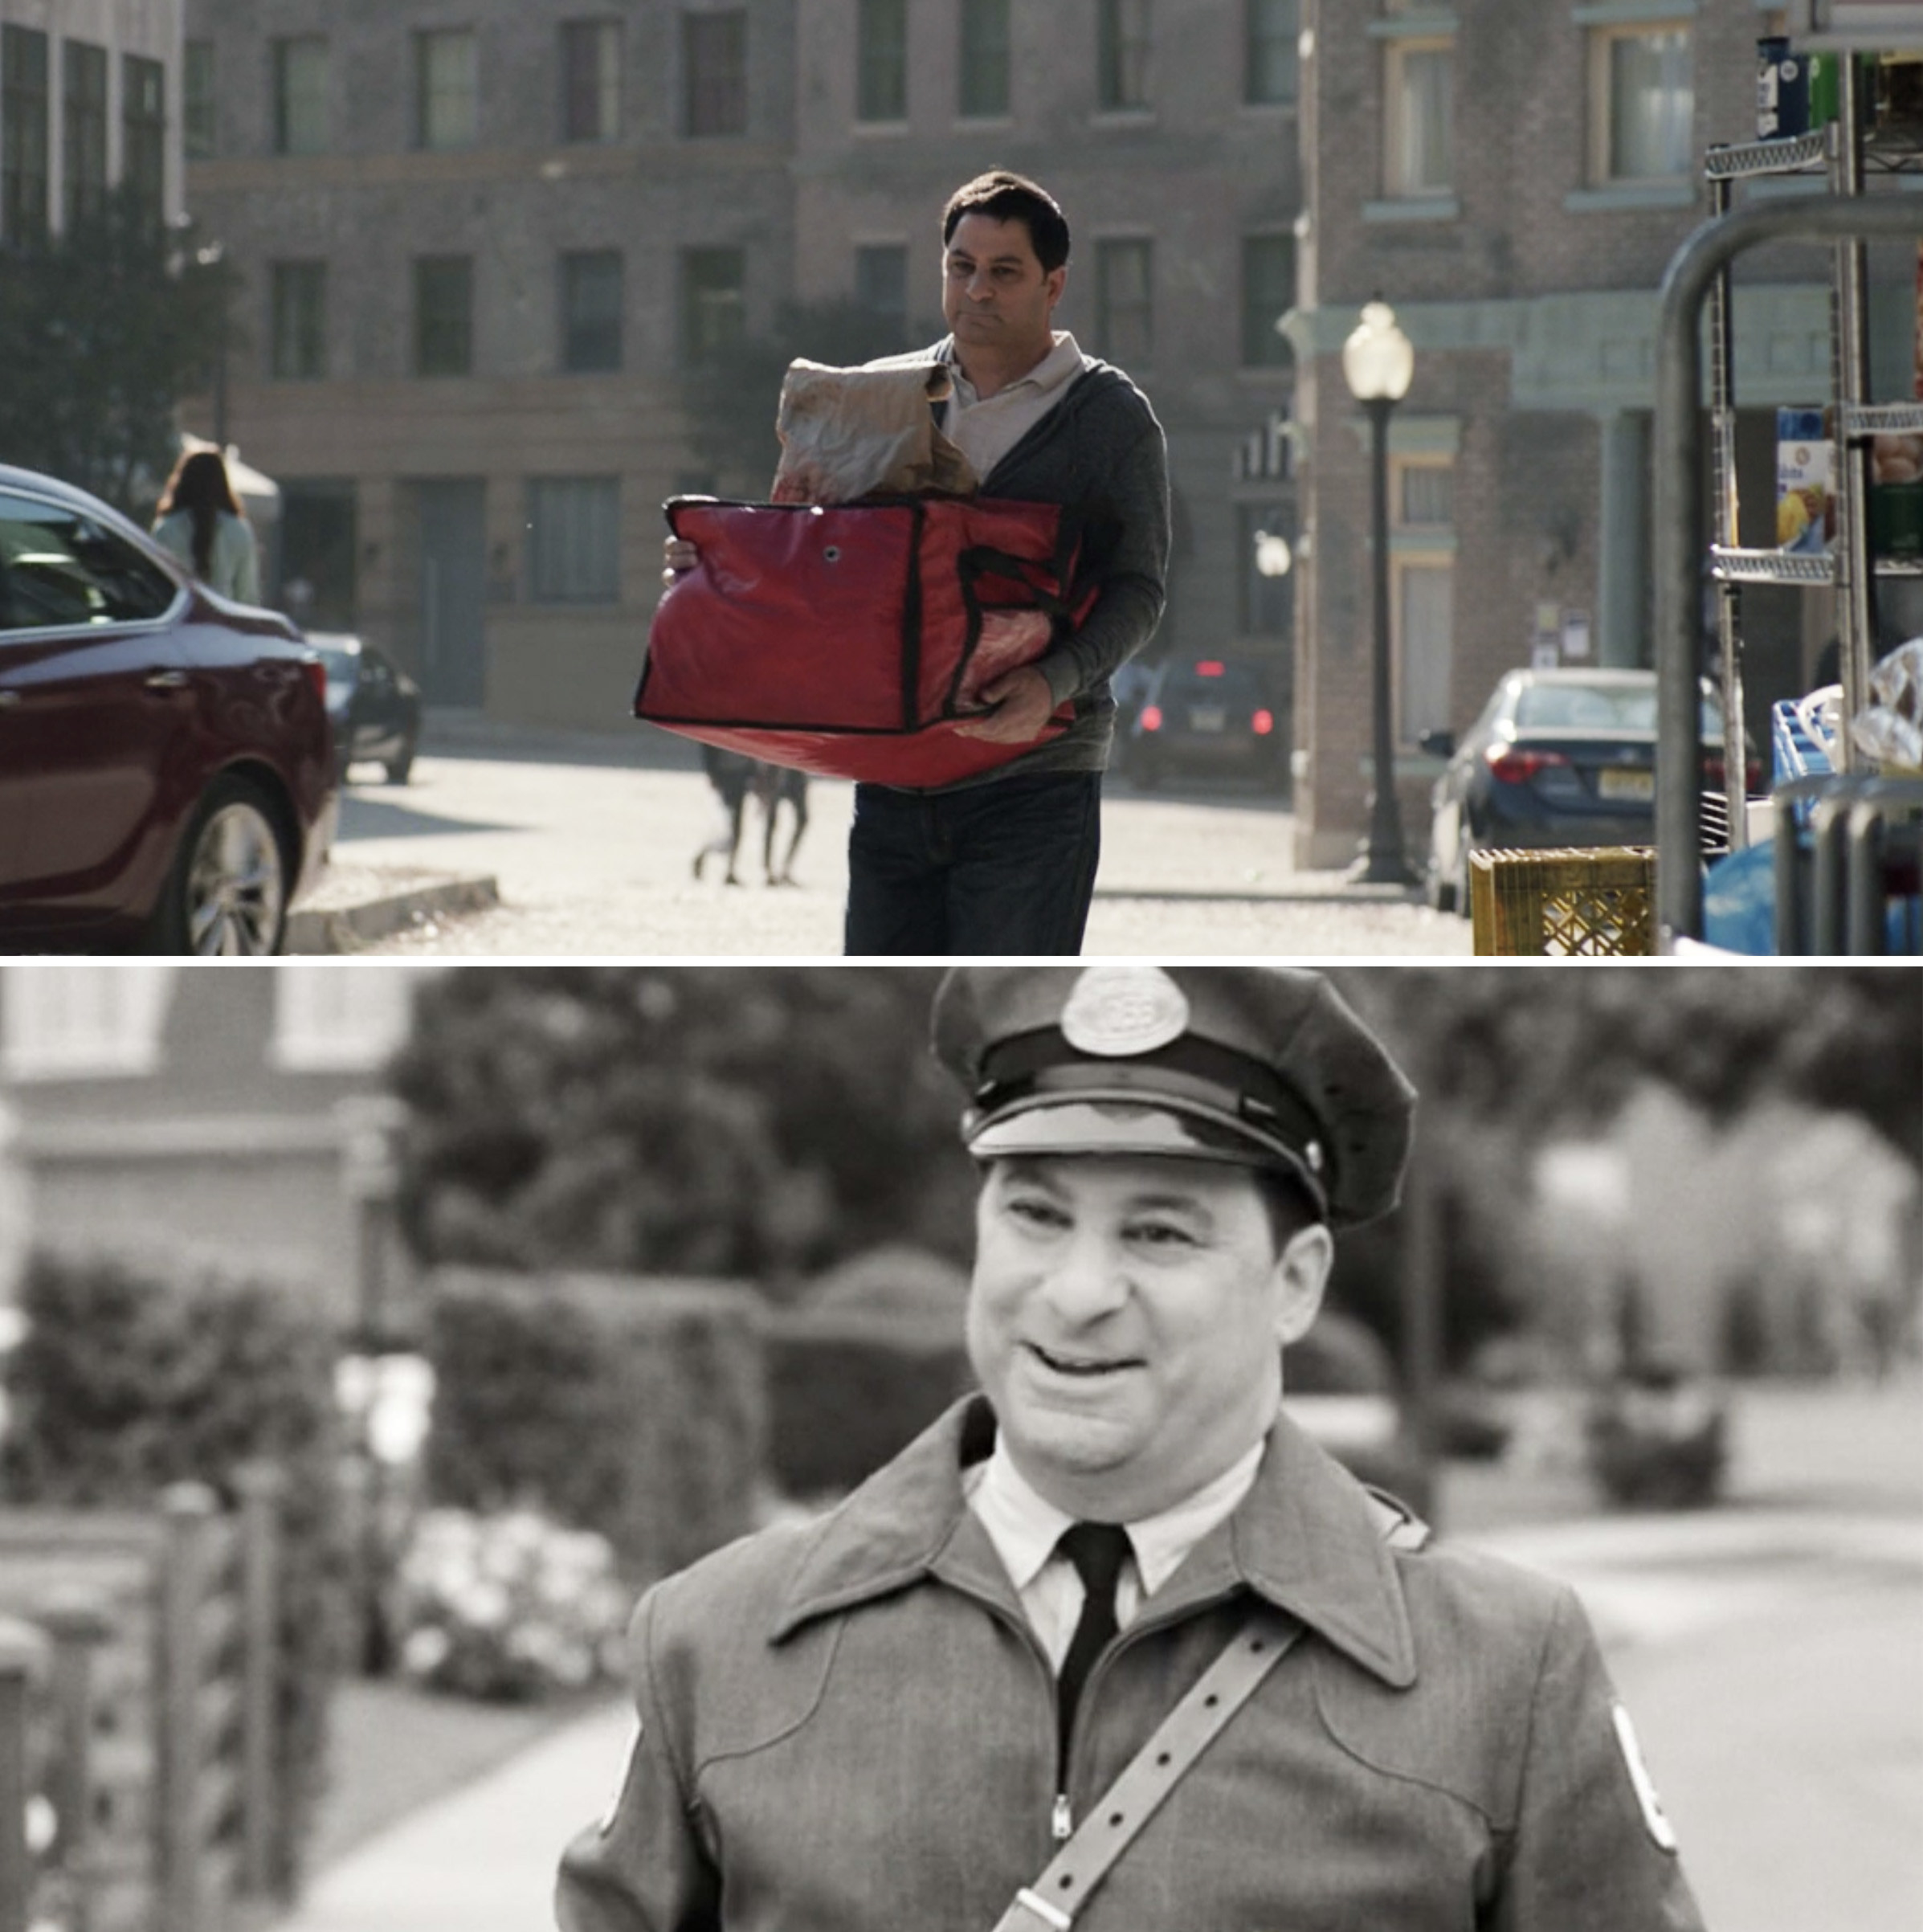 A delivery guy carrying pizza vs. the same guy as a mailman in Episode 1